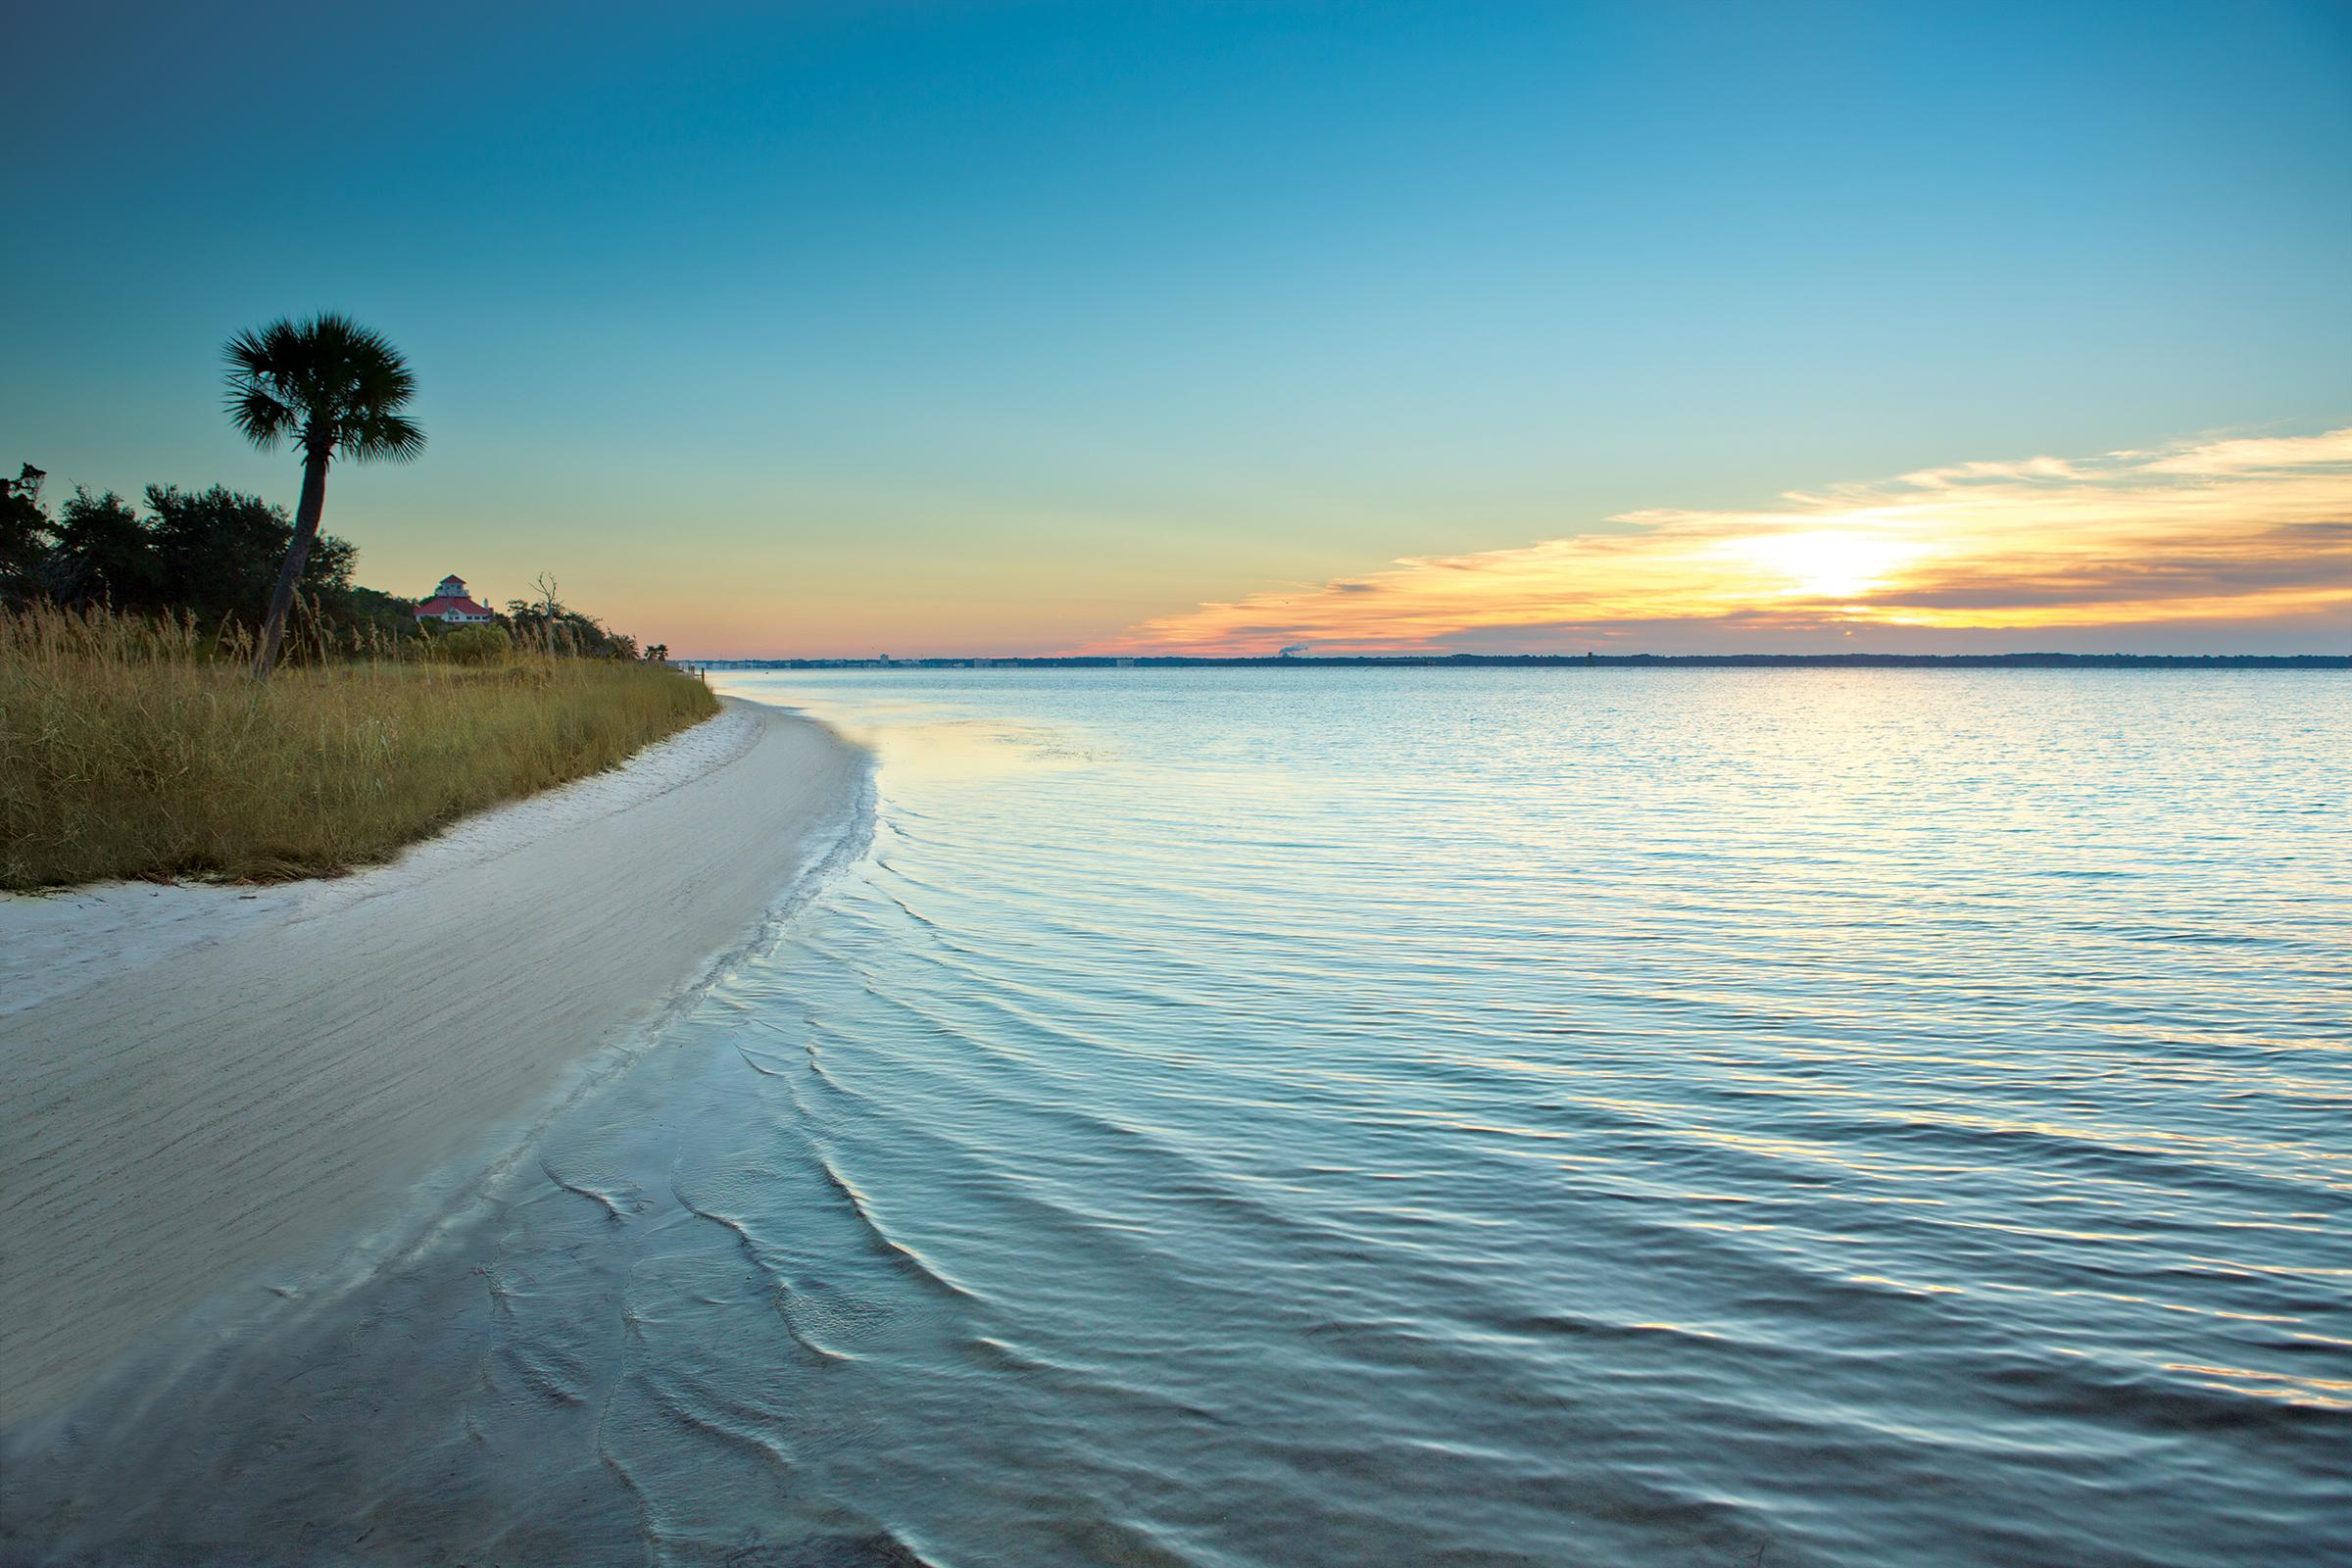 Panama City Beach Florida offers 27 miles of white sand, emerald waters and surefire enjoyment